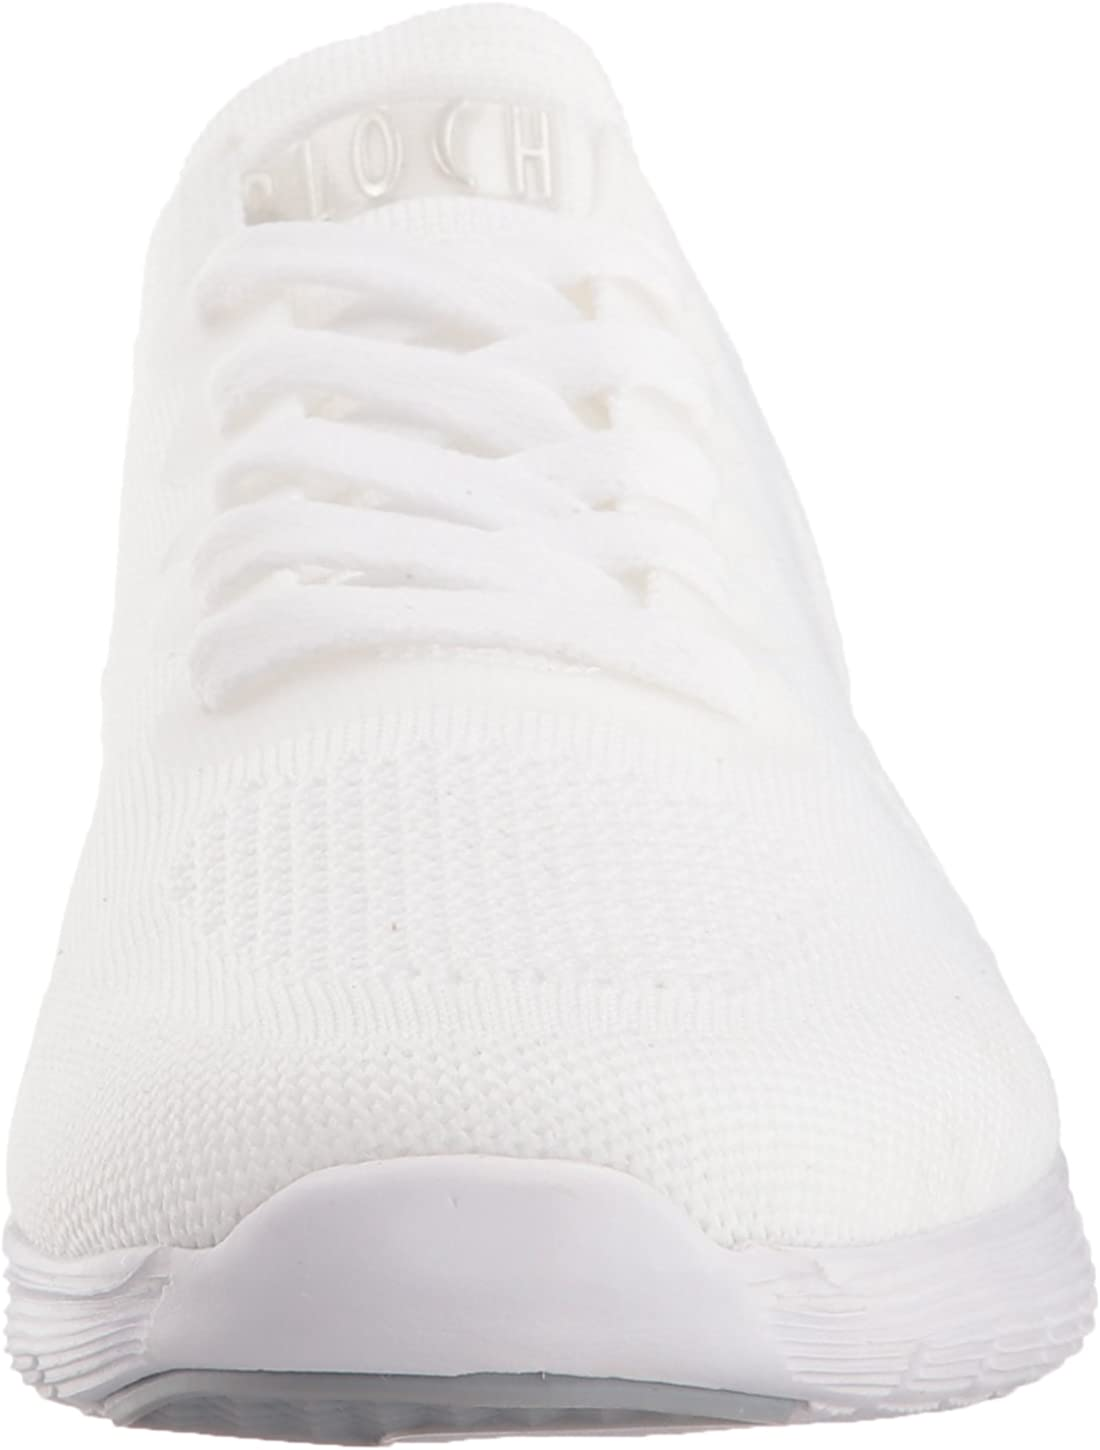 Bloch Womens Omnia Shoe